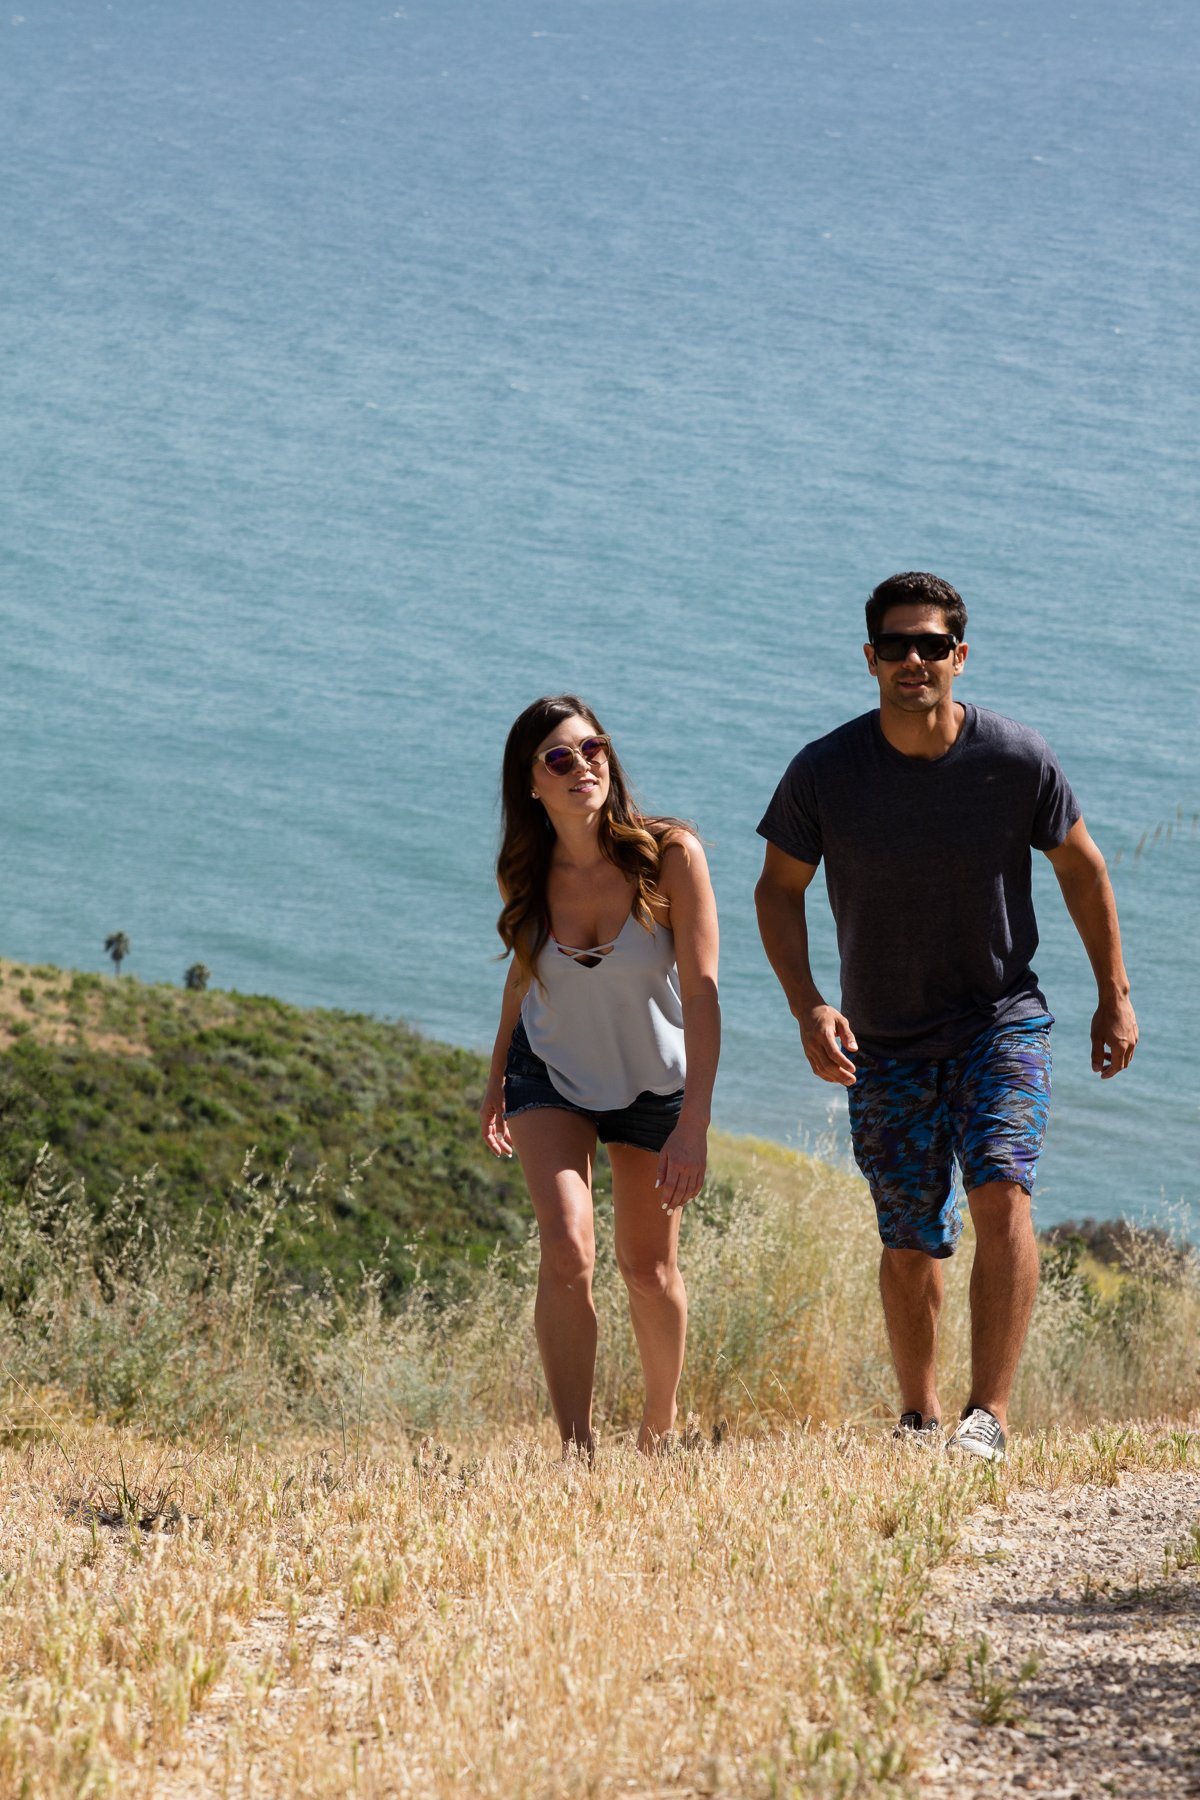 Hiking at the Pismo Preserve